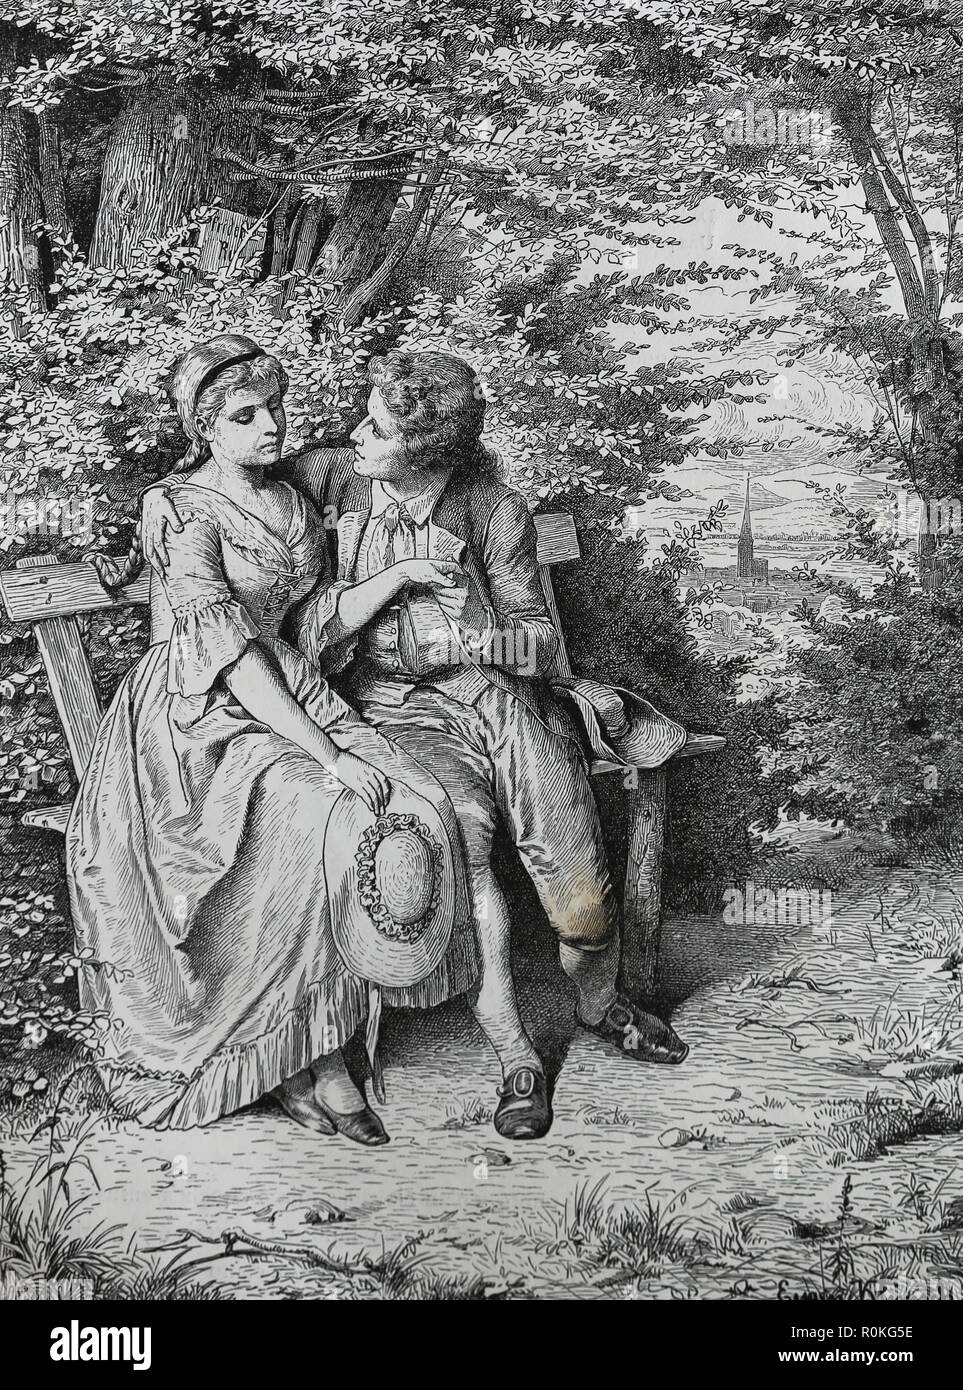 German writer Johann Wolfgang von Goethe (1749-1832) with Friederike Brion (1752-1813). Engravin of Germania, 1882. - Stock Image